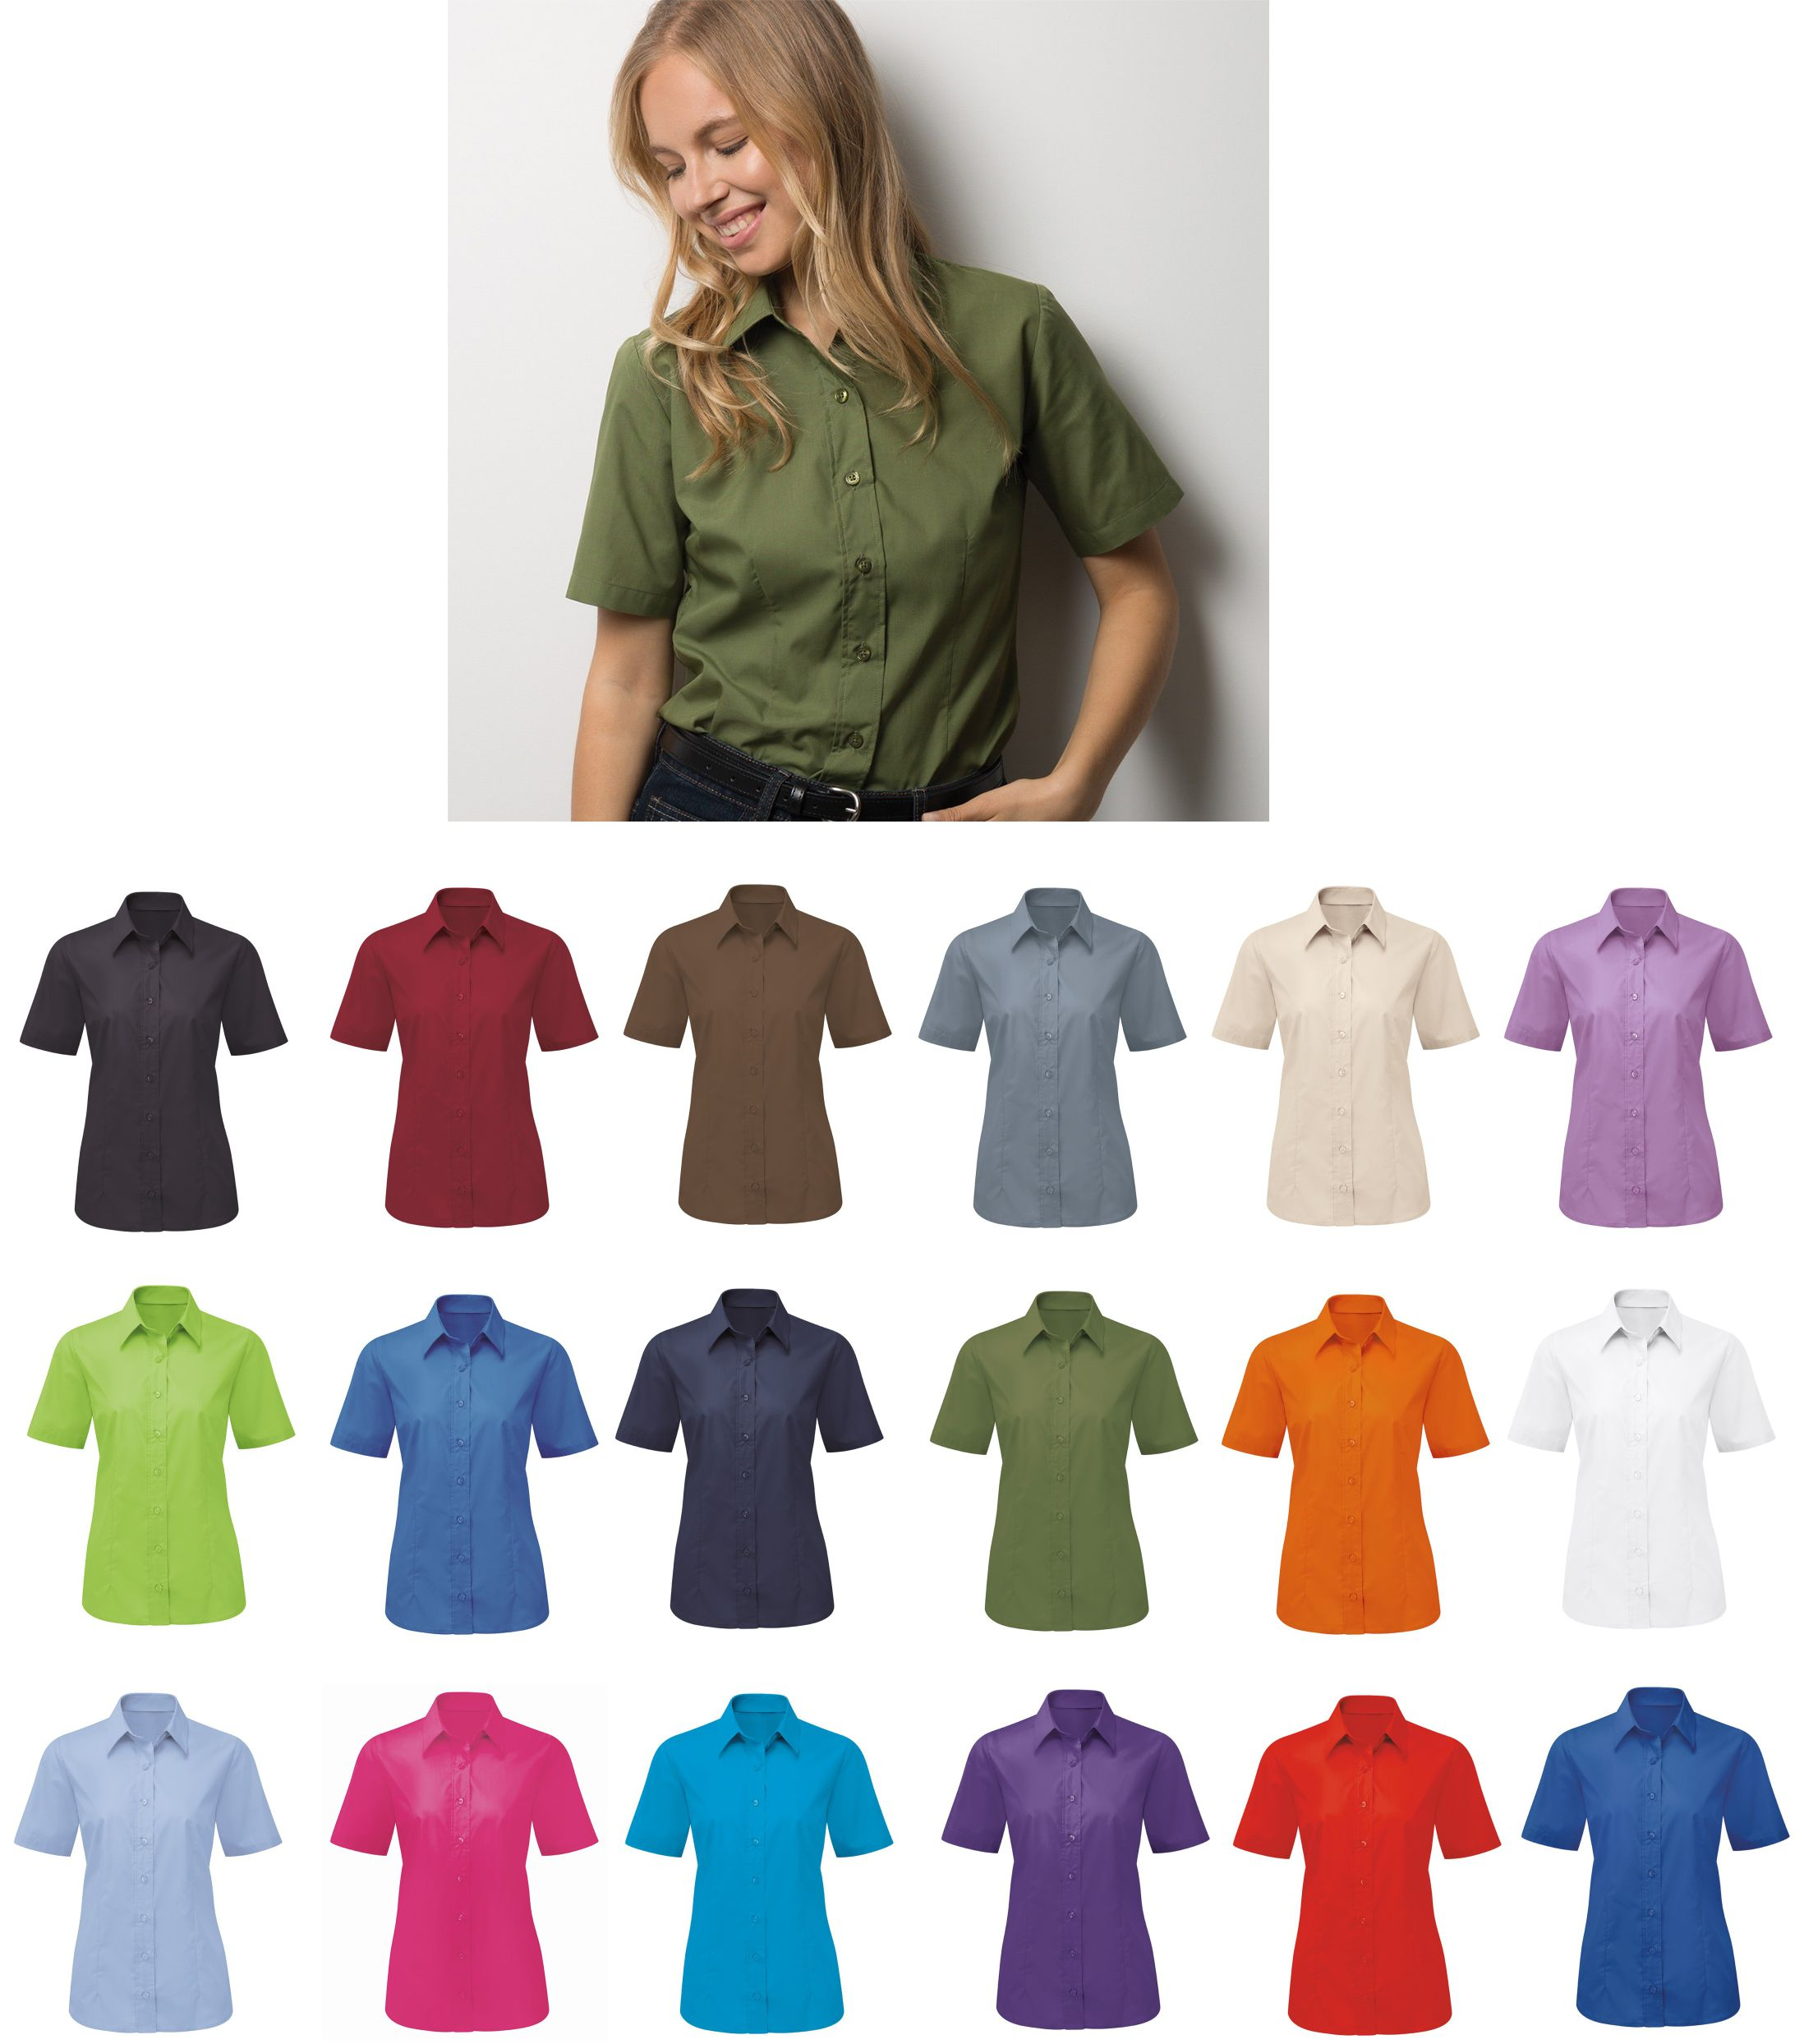 NF91 Womem's Easycare short sleeve shirt